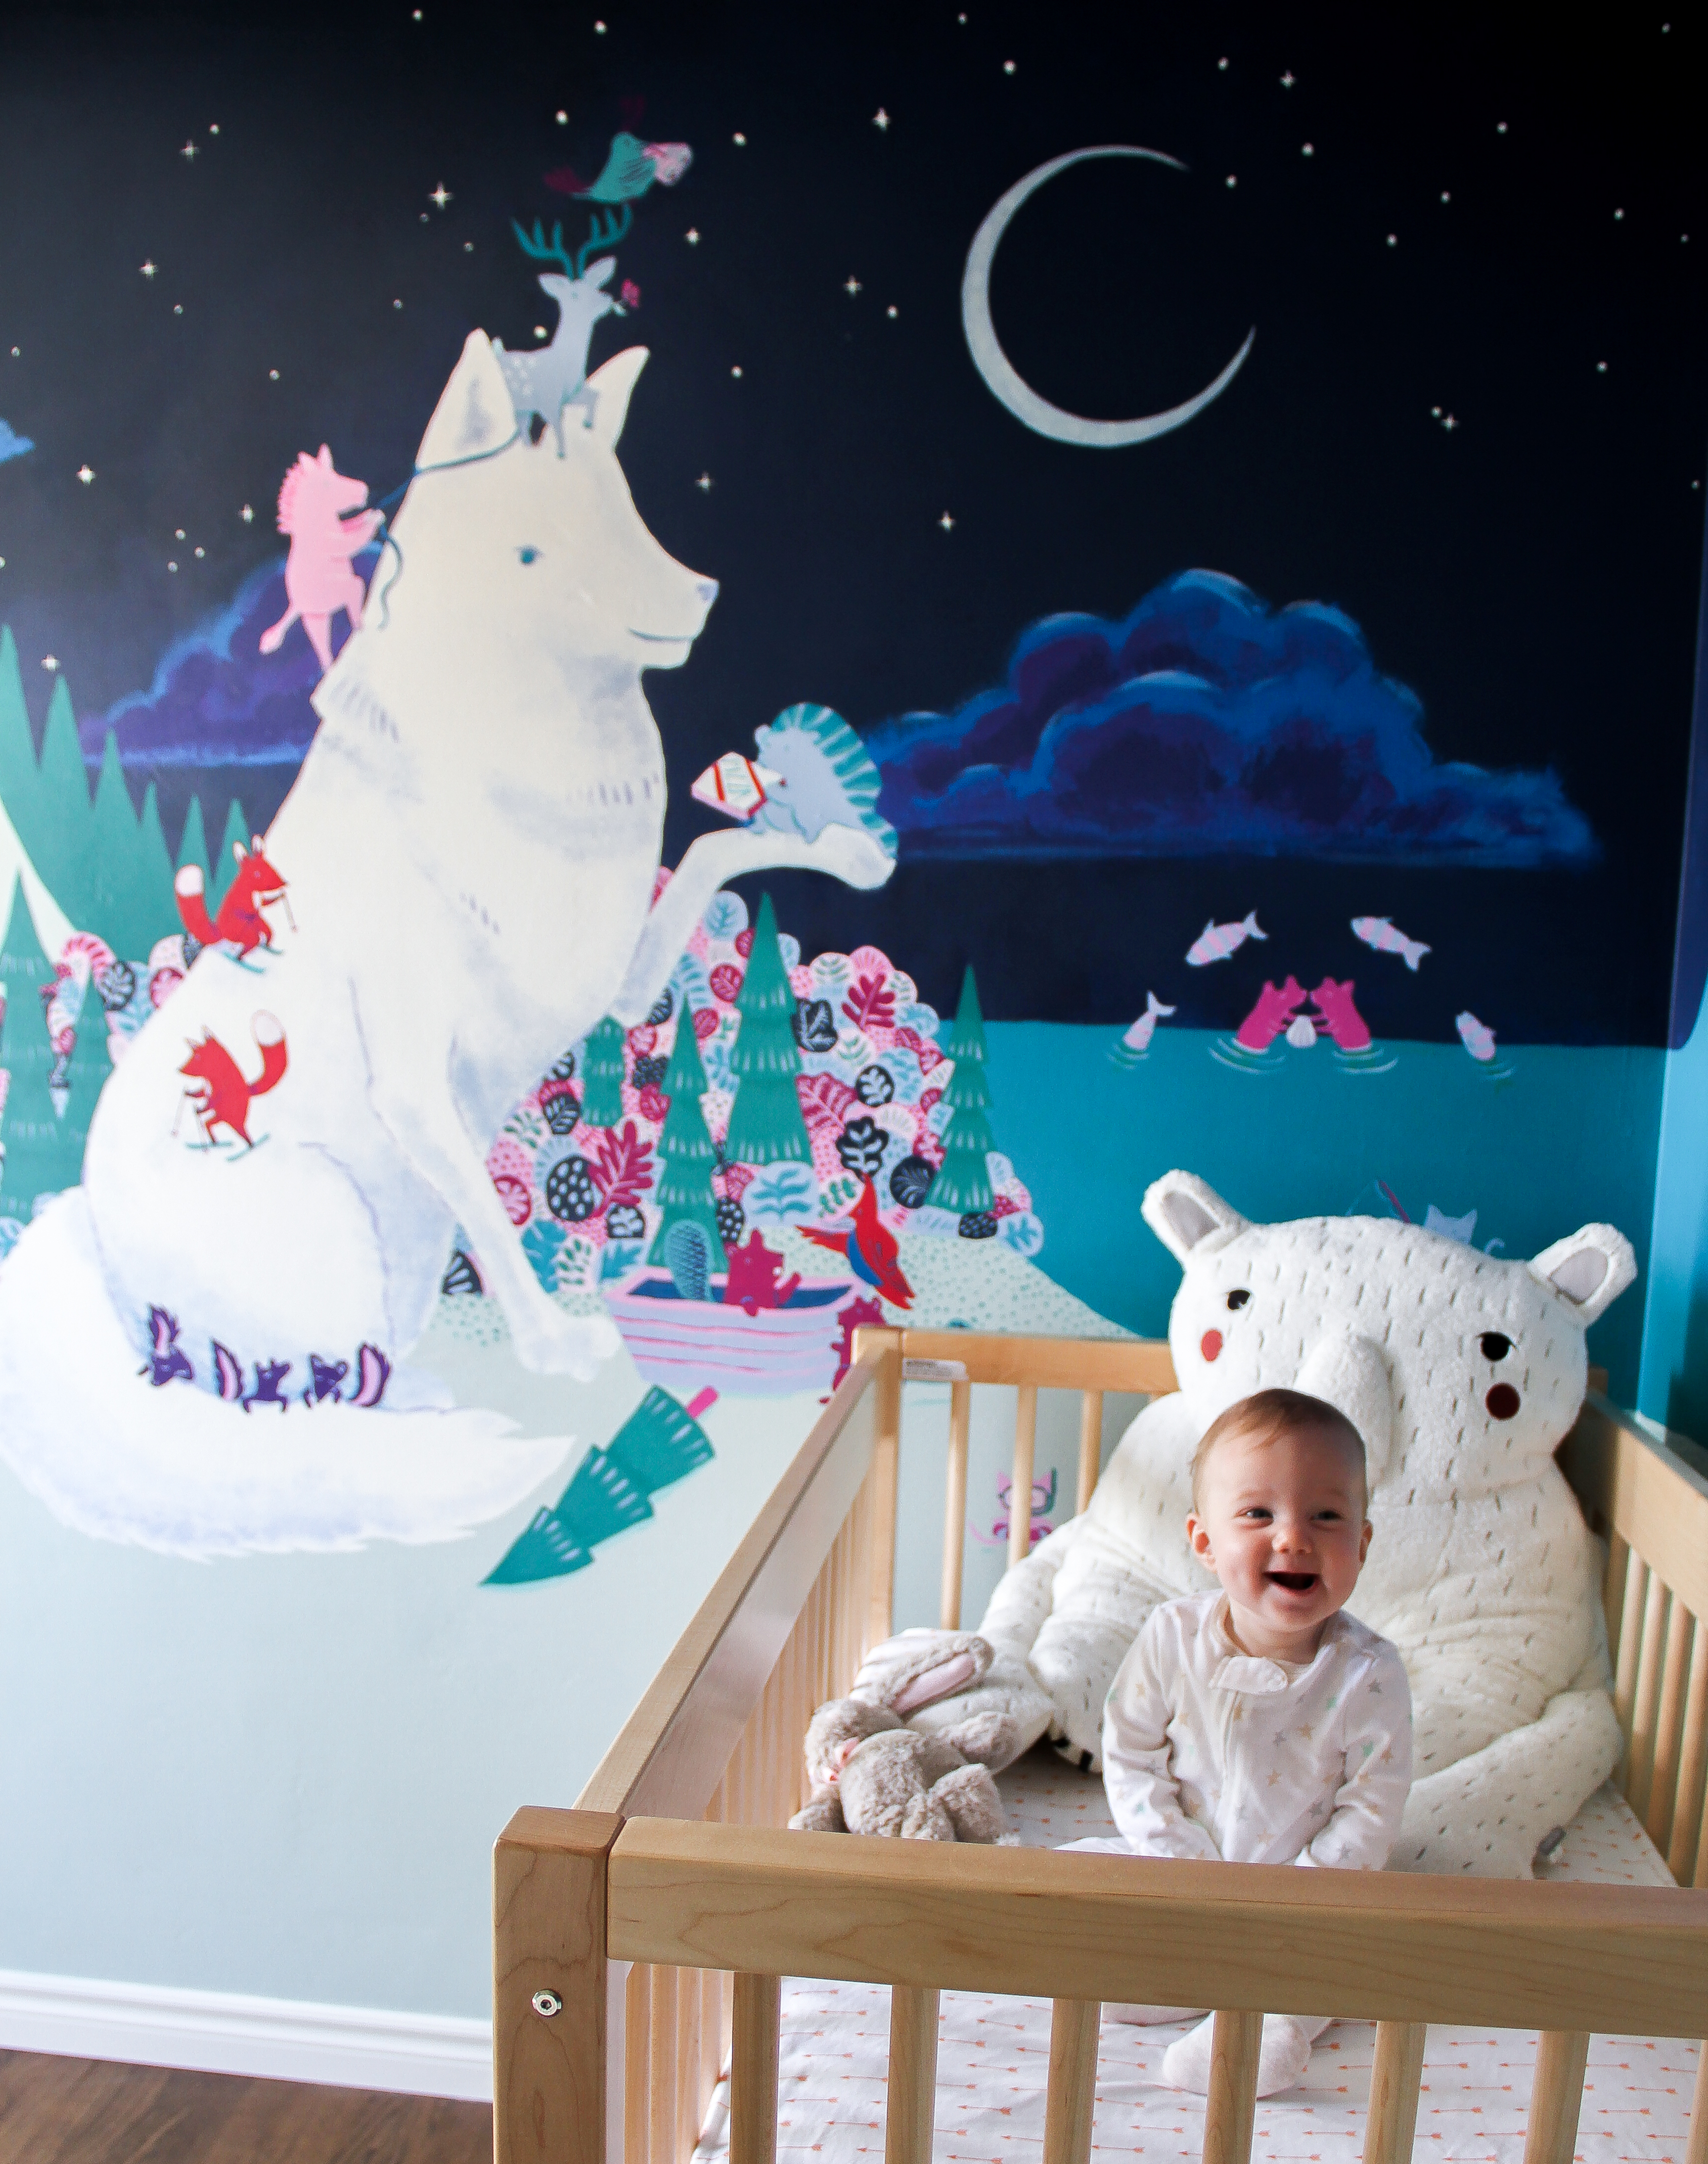 Baby Madeline in her crib with mural behind